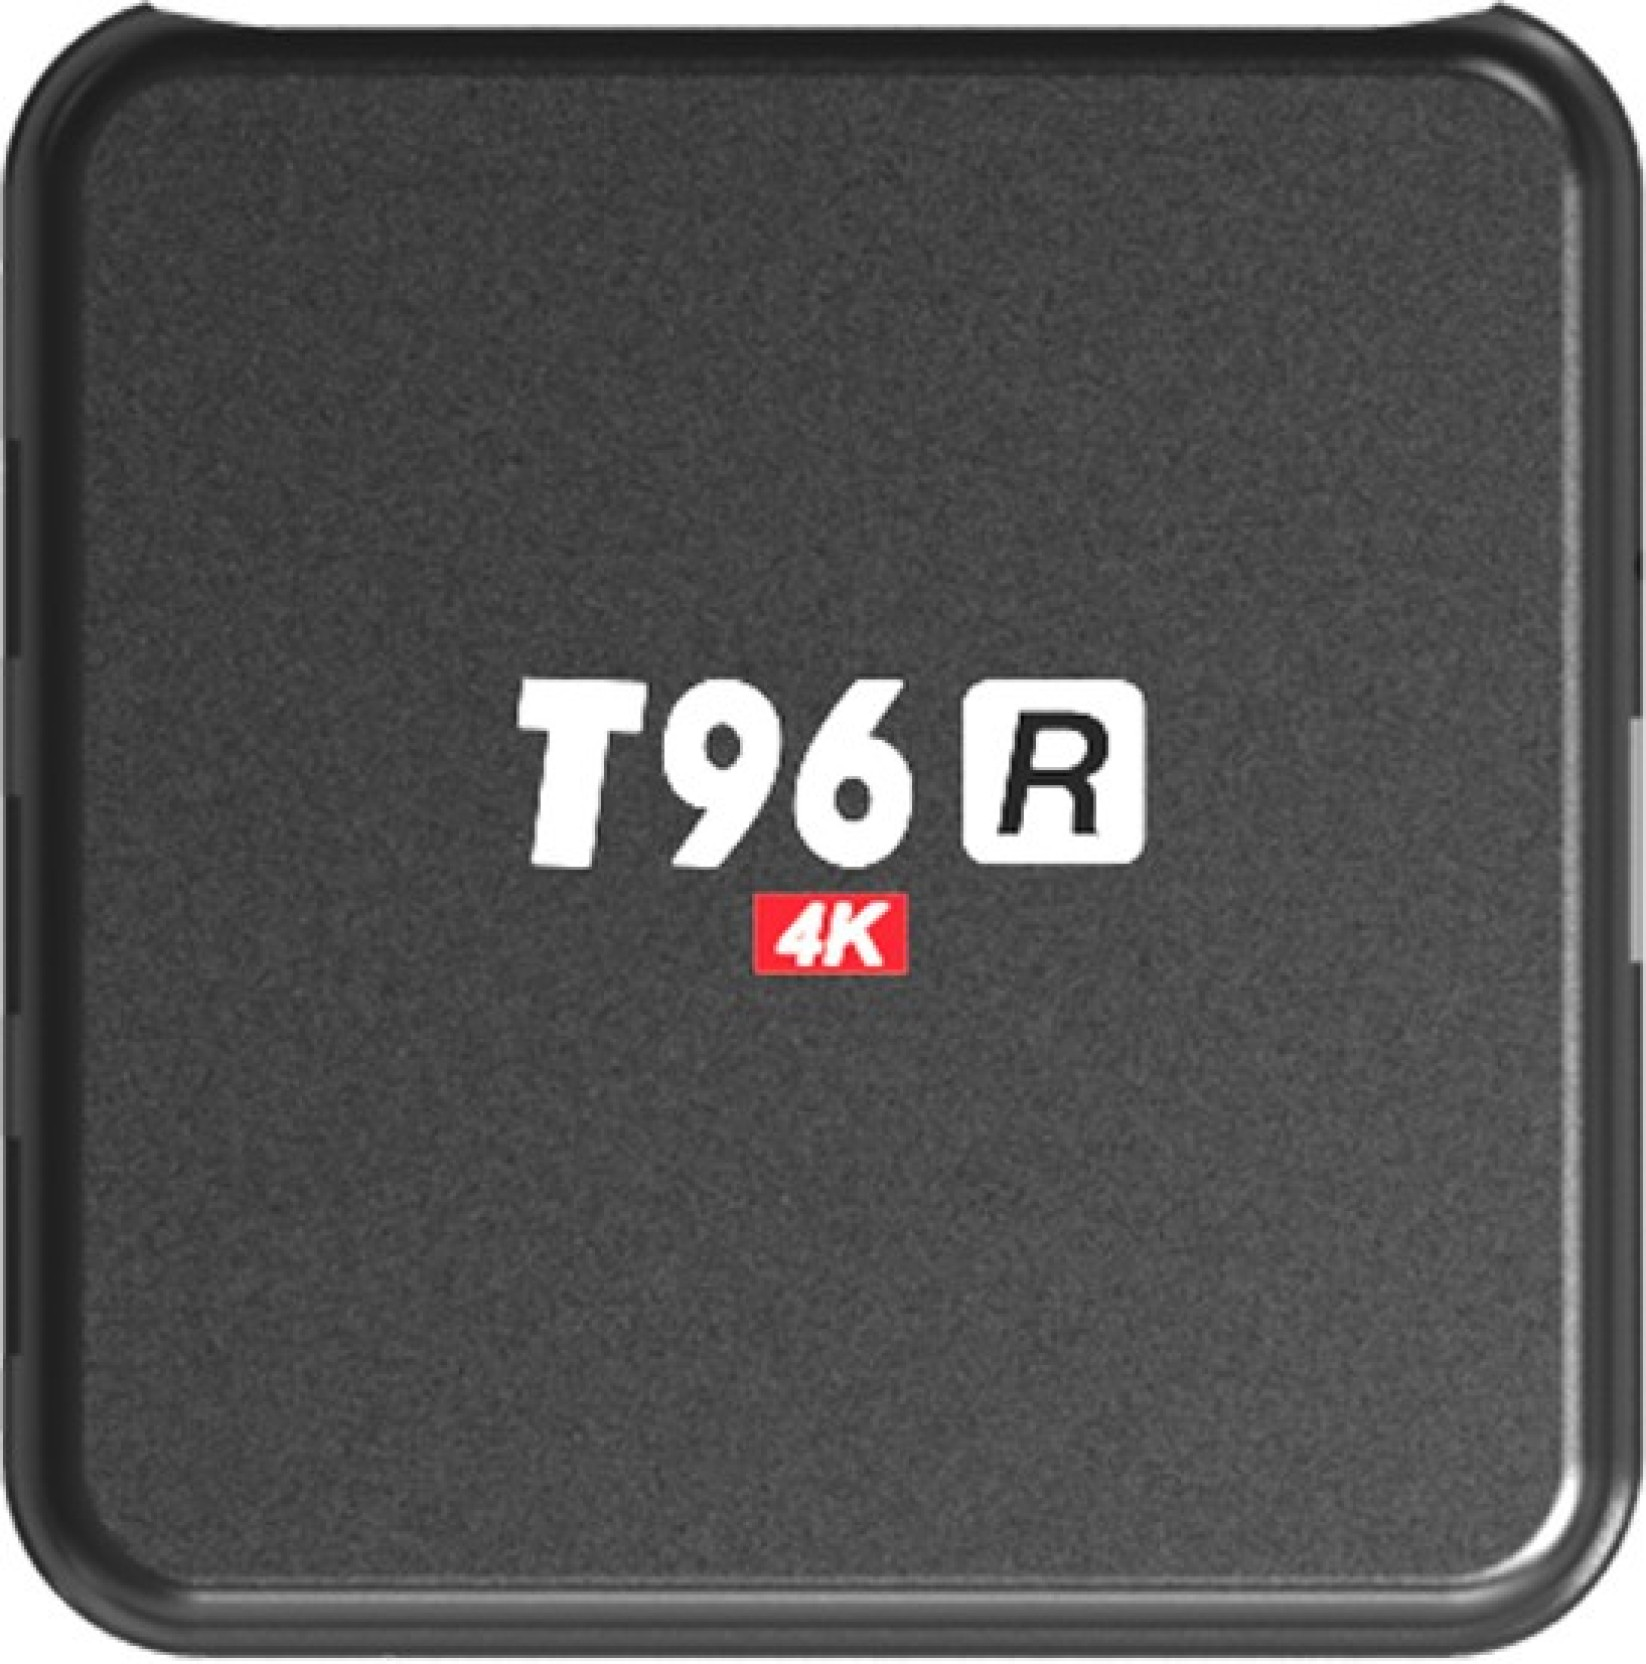 T96 R Android TV Box RK3229 Quad-core 2GB DDR3 RAM 8GB ROM With Bluetooth  V4 4K Media Streaming Device